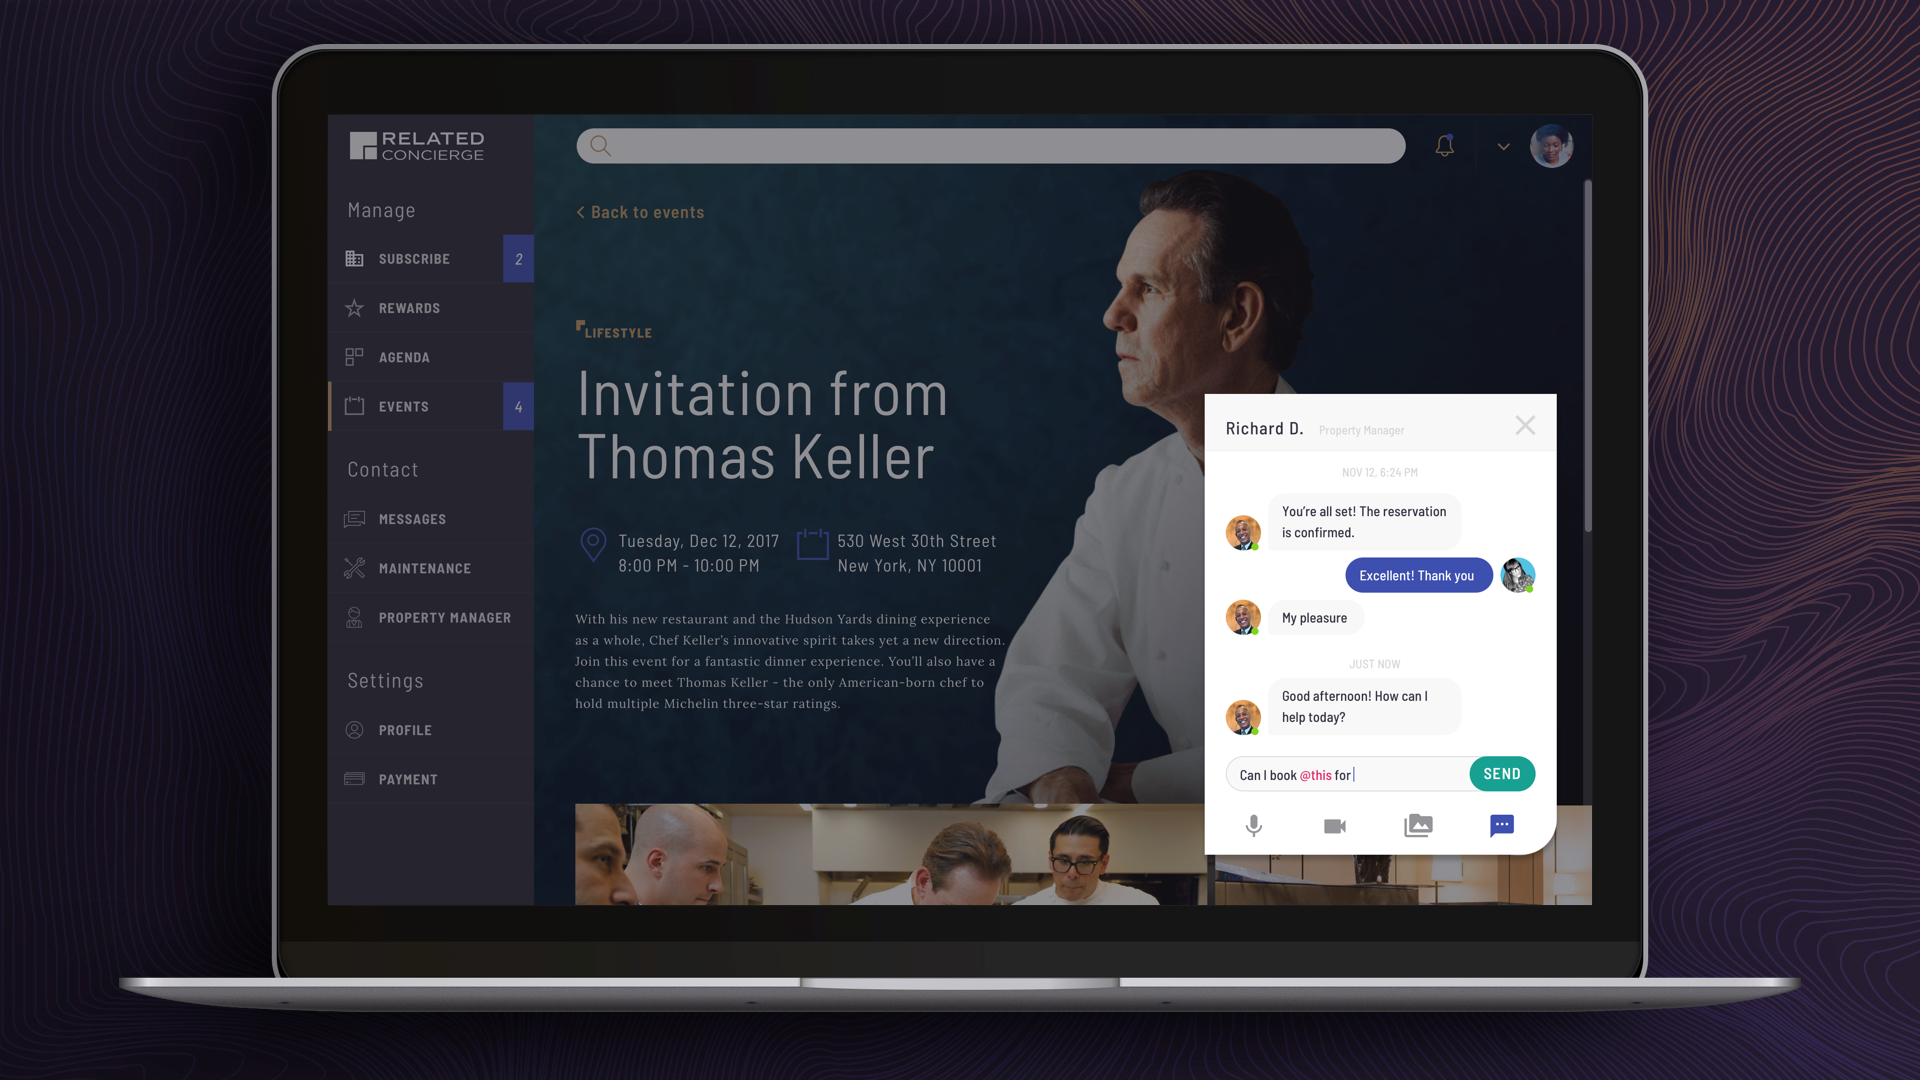 Current Residents – Chat with Concierge